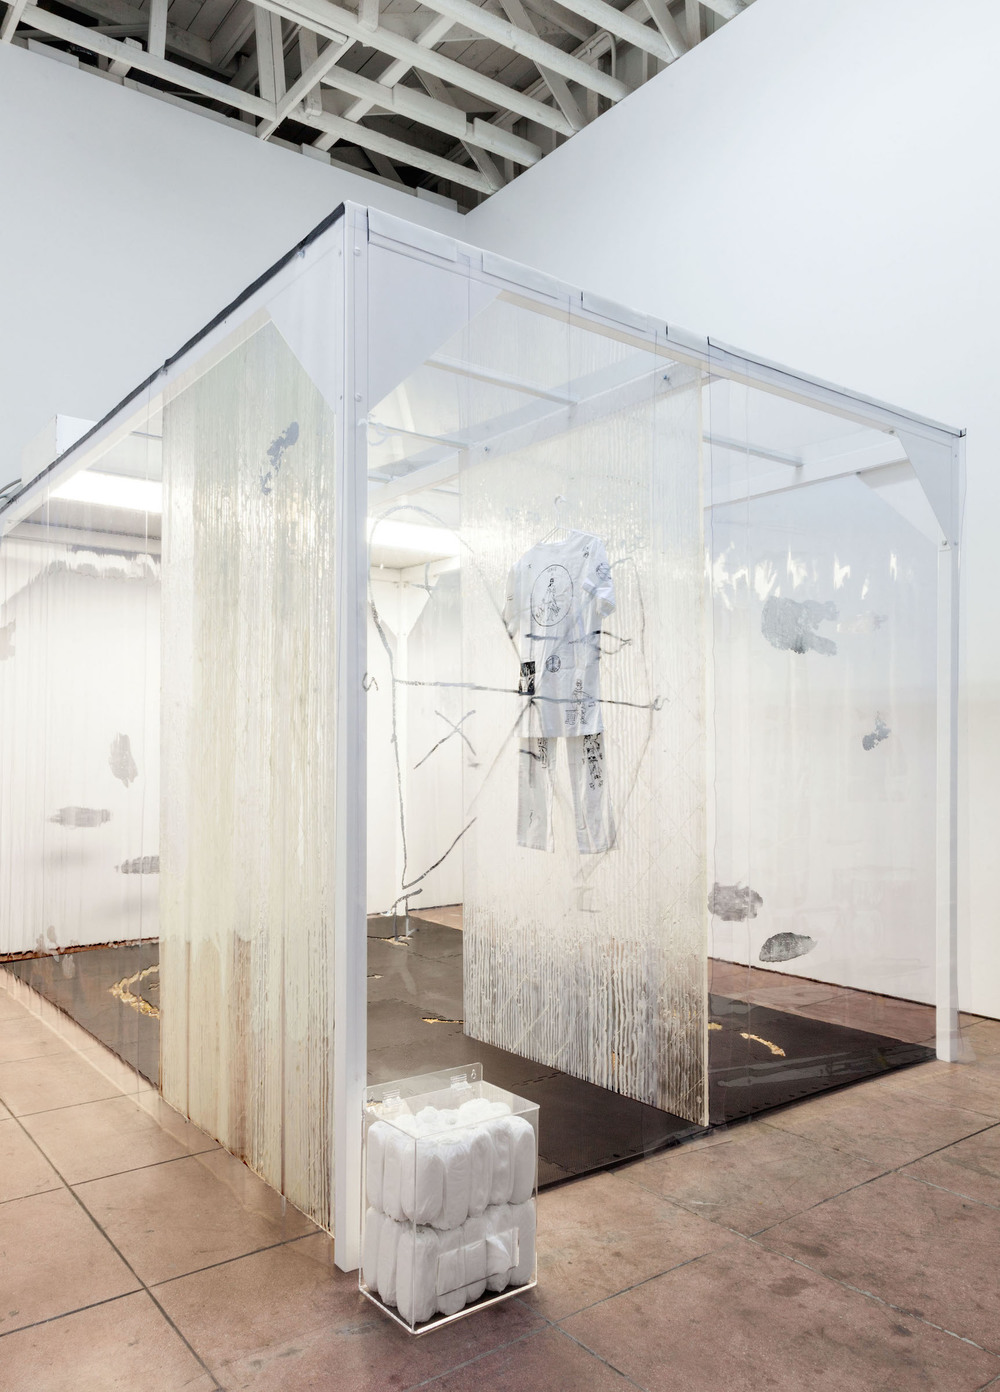 Natalie Labriola,  Cleanroom for Psychic Protection , 2015 - 2016, modified, used ISO-Level 8 cleanroom: heat-pressed powder coated steel beams, fluorescent lights, vents, plexiglas drop ceiling, heat pressed vinyl curtains, anti-microbial interlocking foam mats with juniper berries and crystals cast in wax, silicone caulk on acrylic panels, Velcro, shoe covers, acrylic shoe cover dispenser, 89 x 96 x 144 in